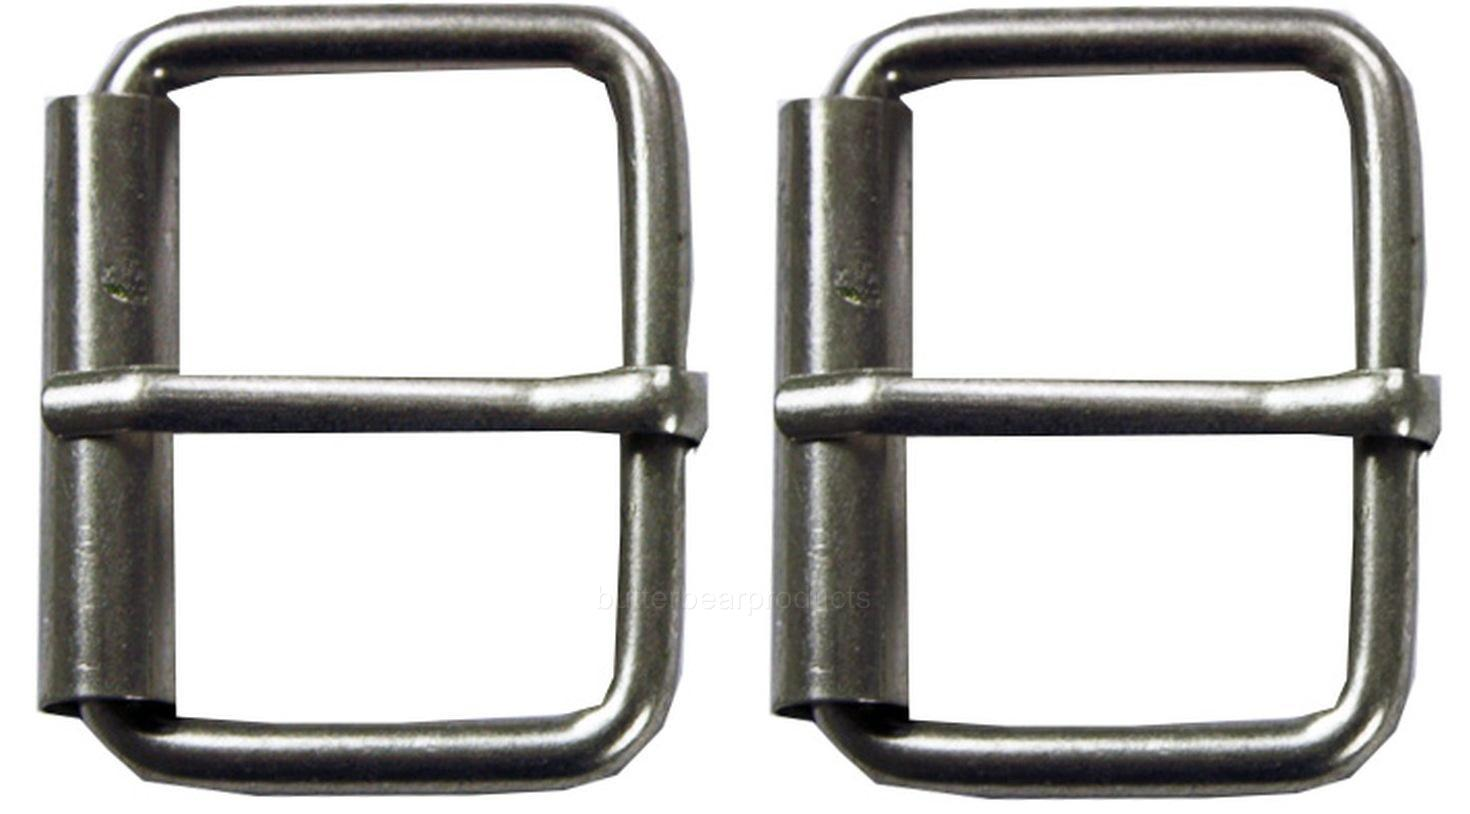 2x Single Prong Roller Replacement Belt Buckle Quality